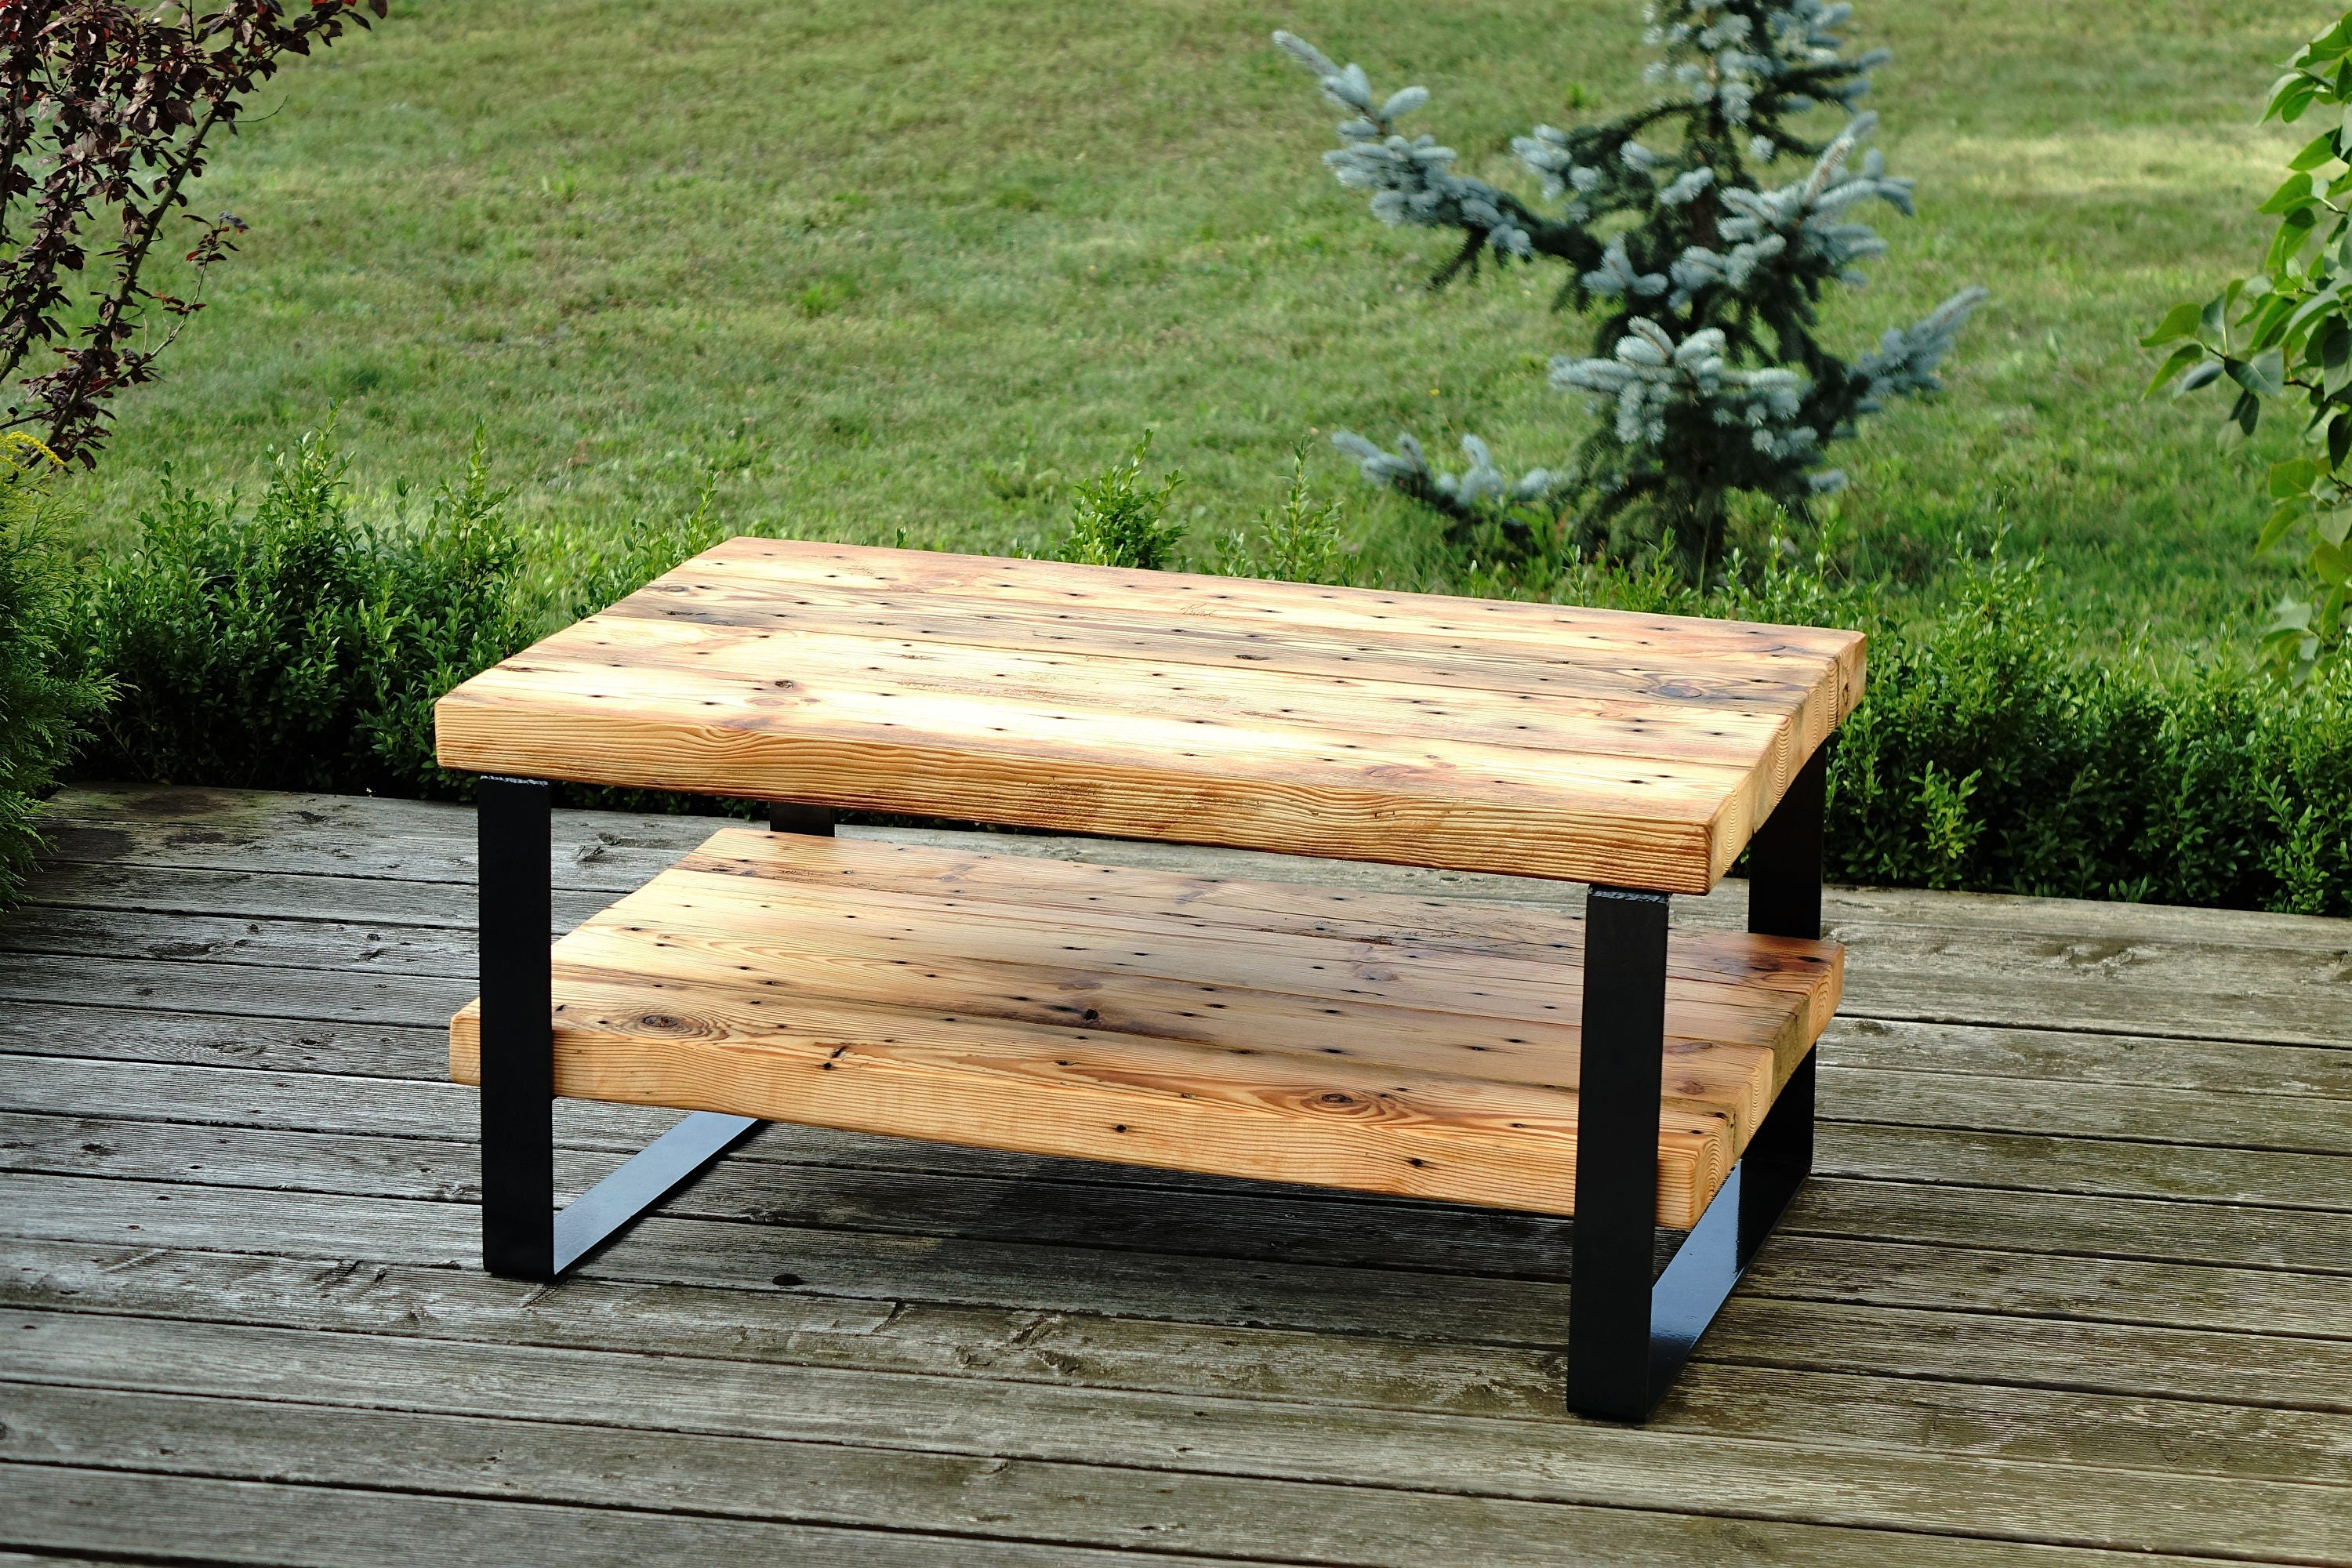 Reclaimed Wood Beam Coffee Table With Shelf , 2 Level